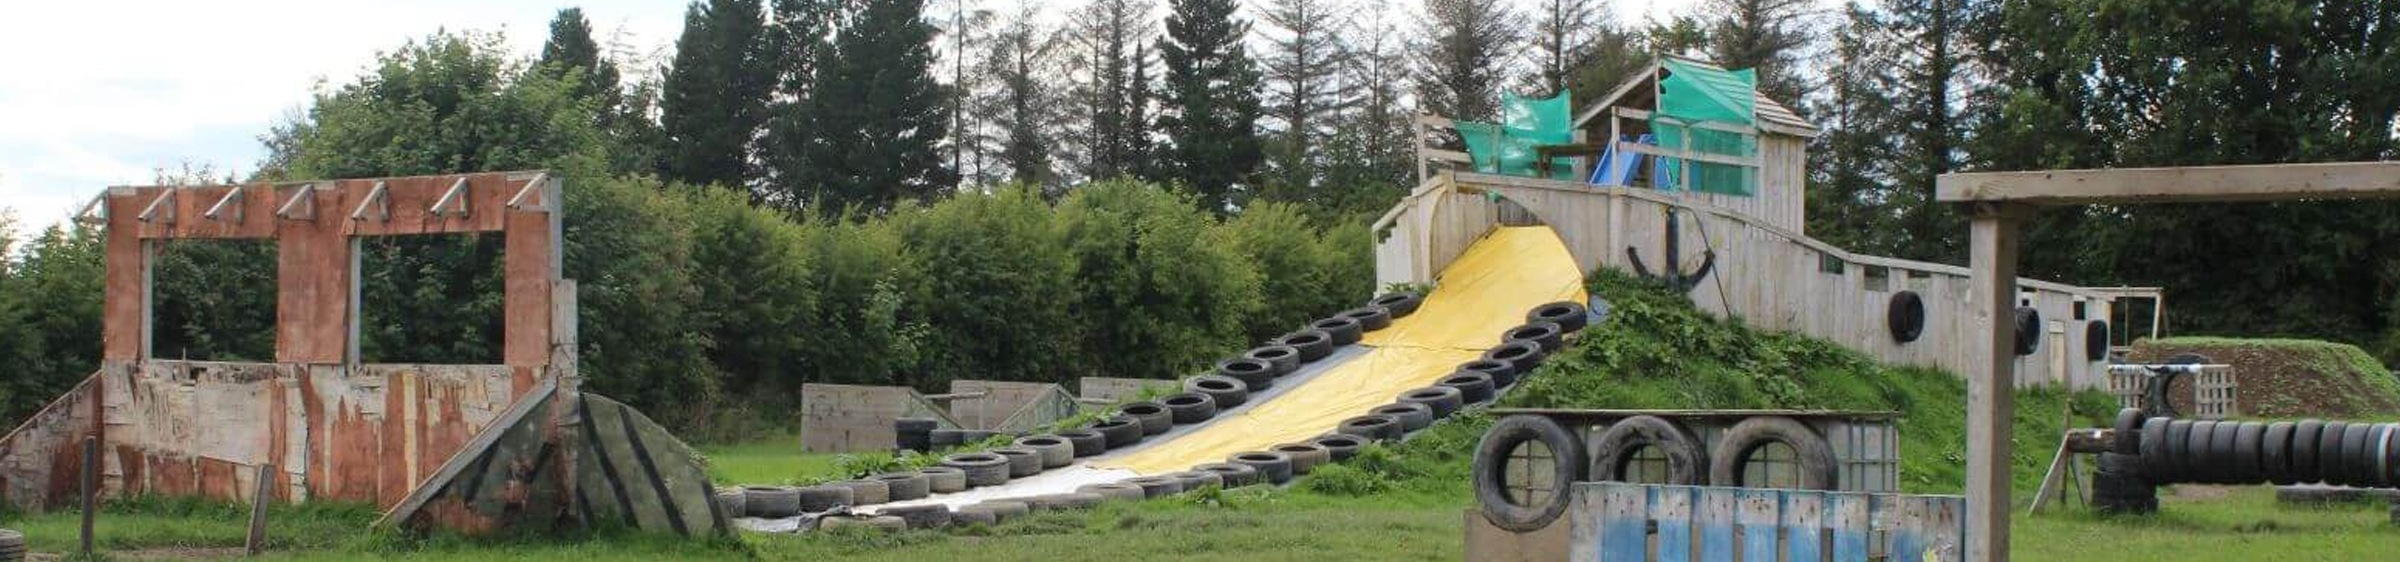 Assault Course Slide